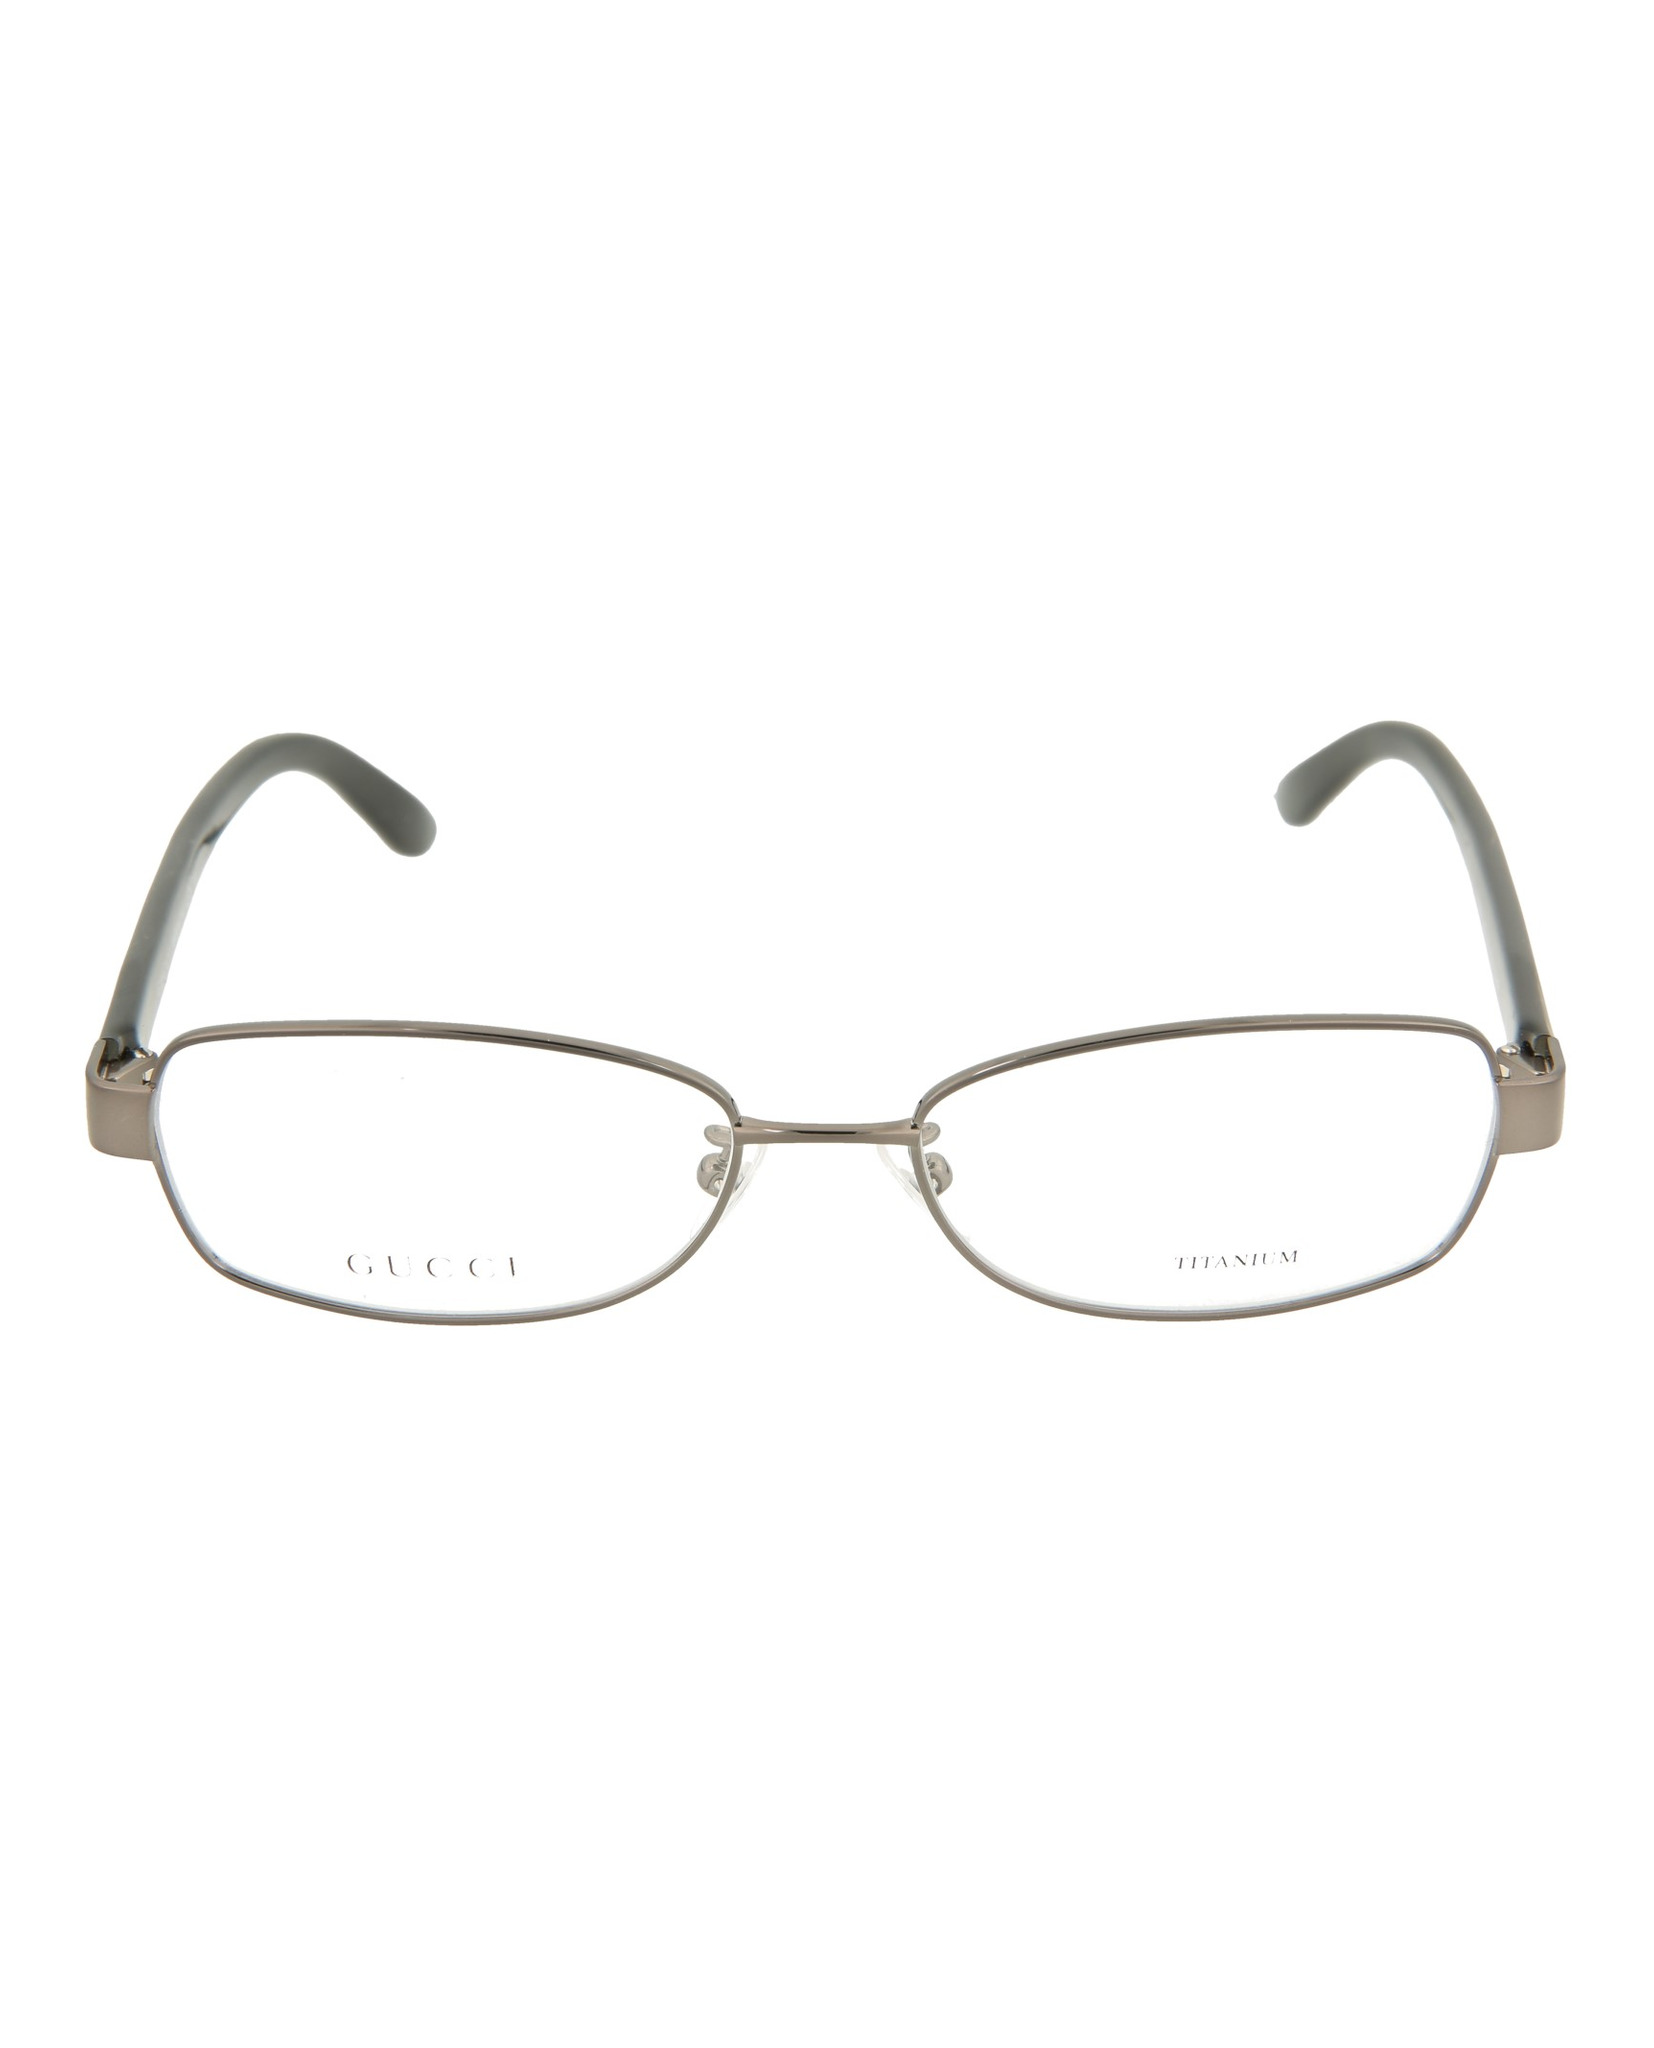 2574d59c1bc Gucci Womens Round Oval Optical Frames GG9690J-1571934BJ-5416 ...